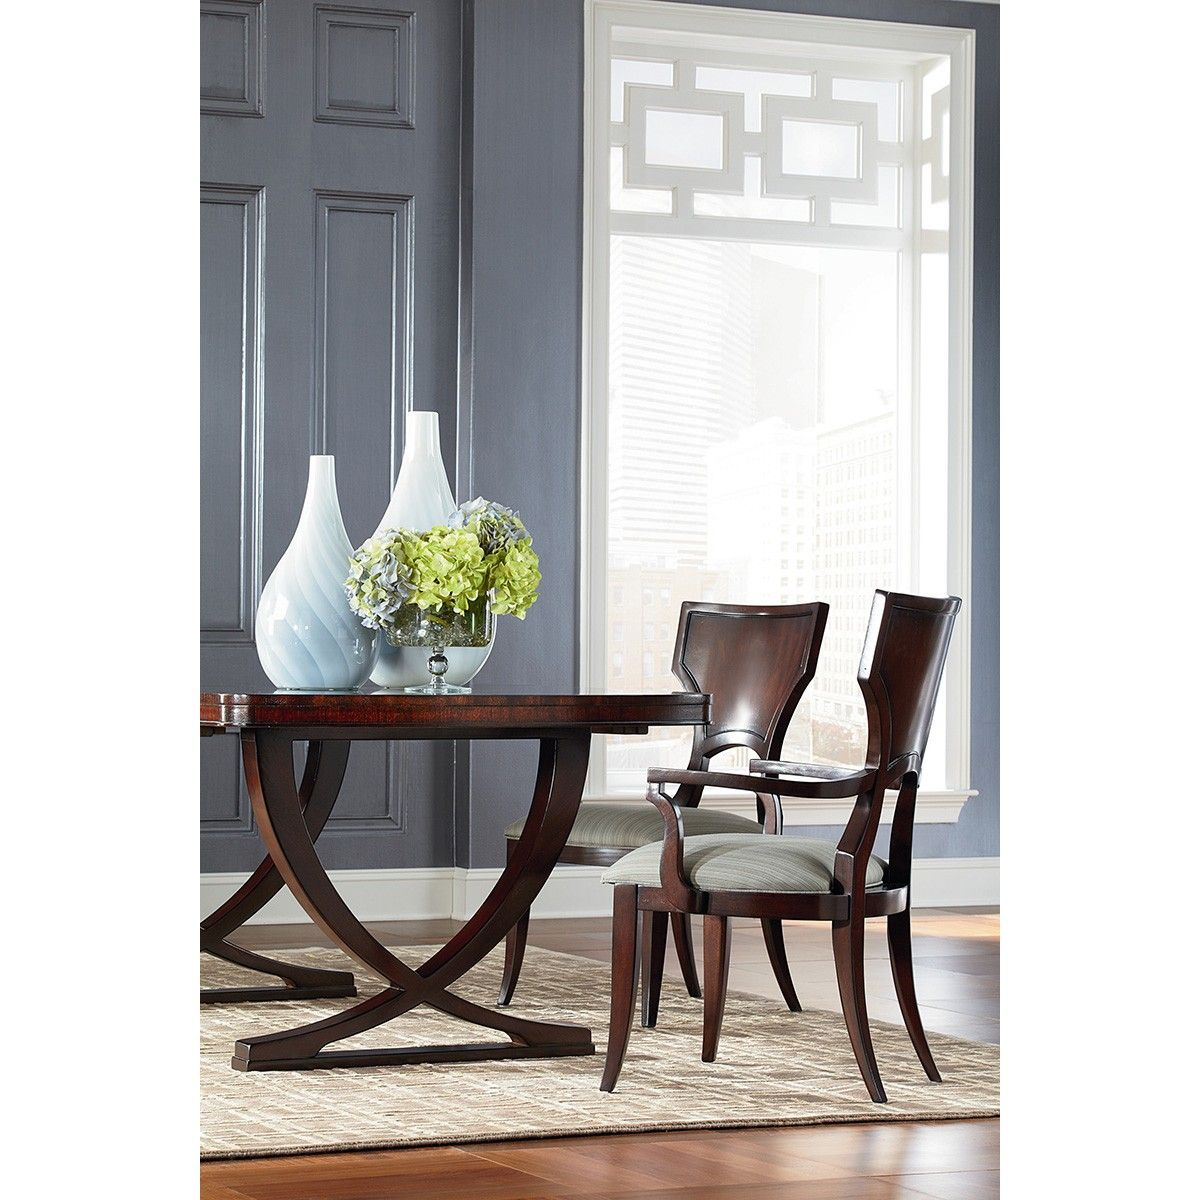 Thomasville Spellbound Double Pedestal Dining Table Thomasville